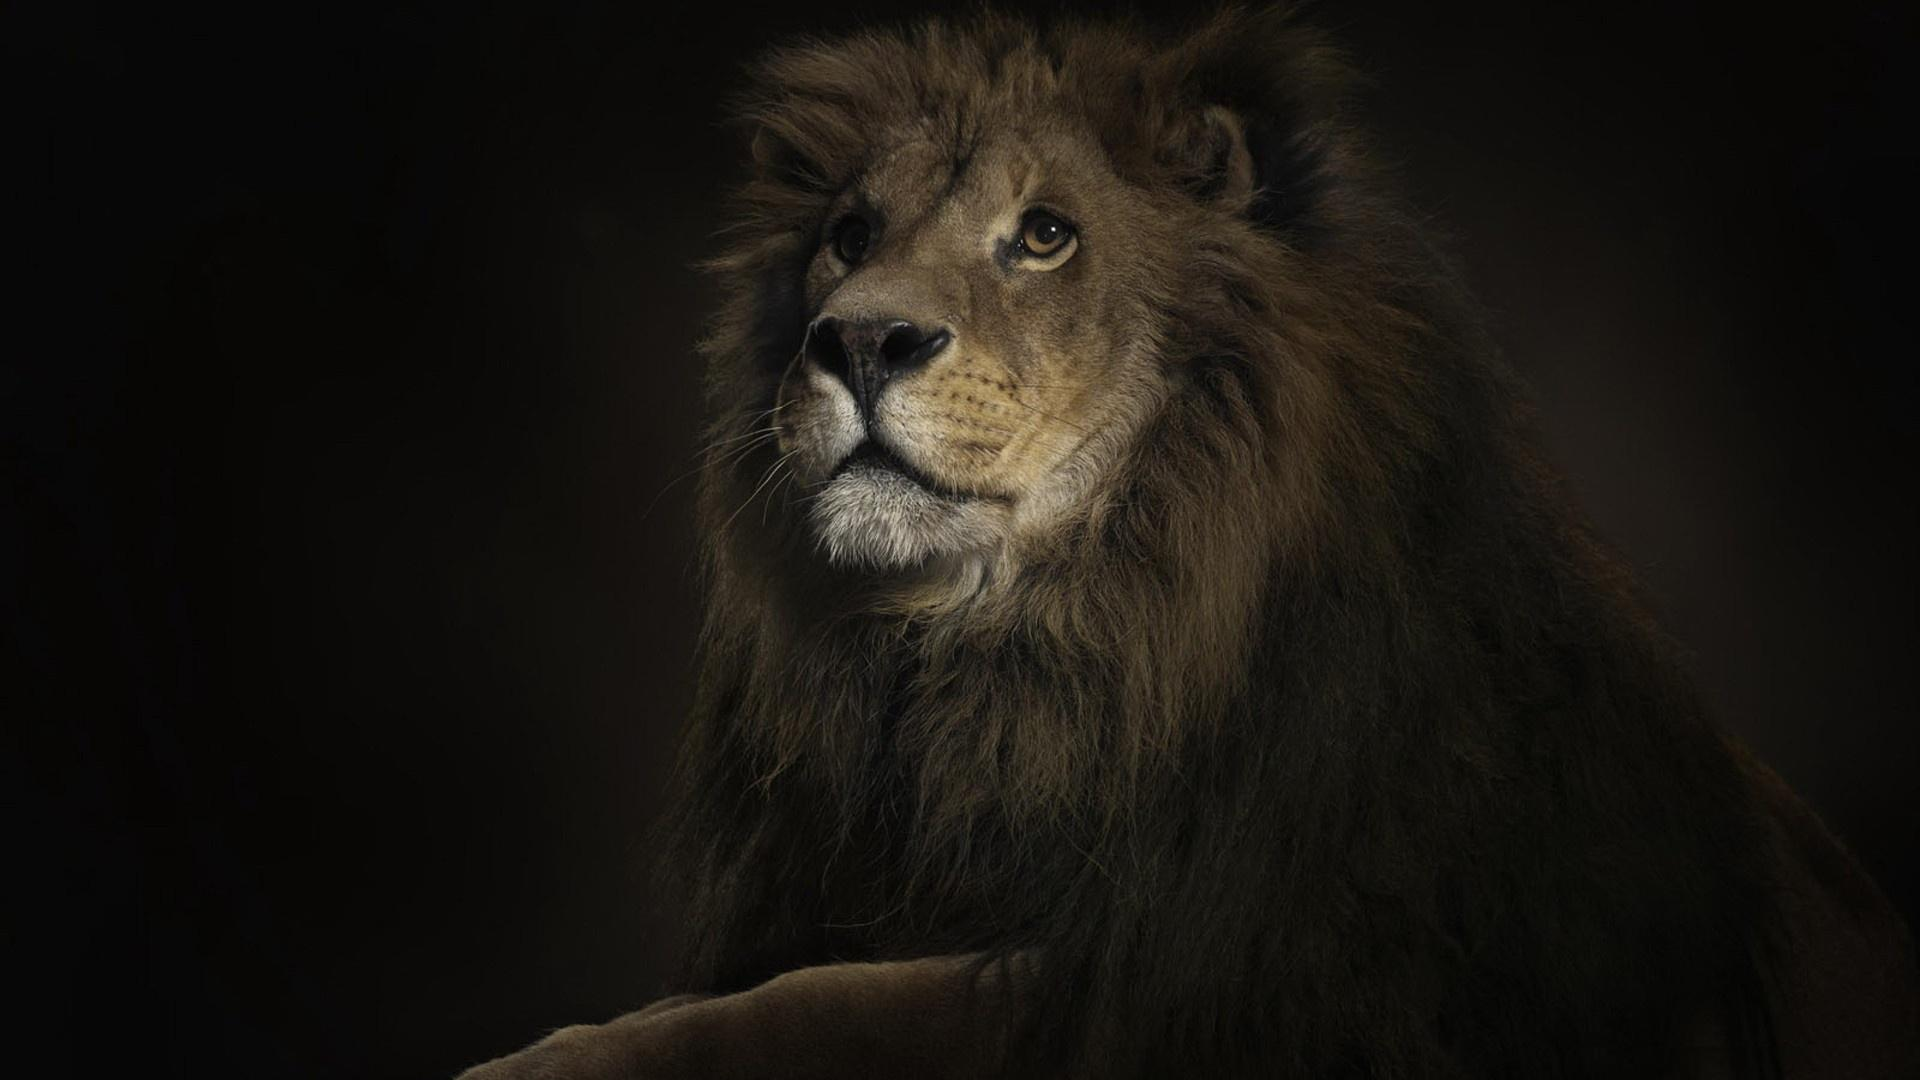 Hd Lion Wallpaper 11078 Hd Wallpapers in Animals   Imagescicom 1920x1080